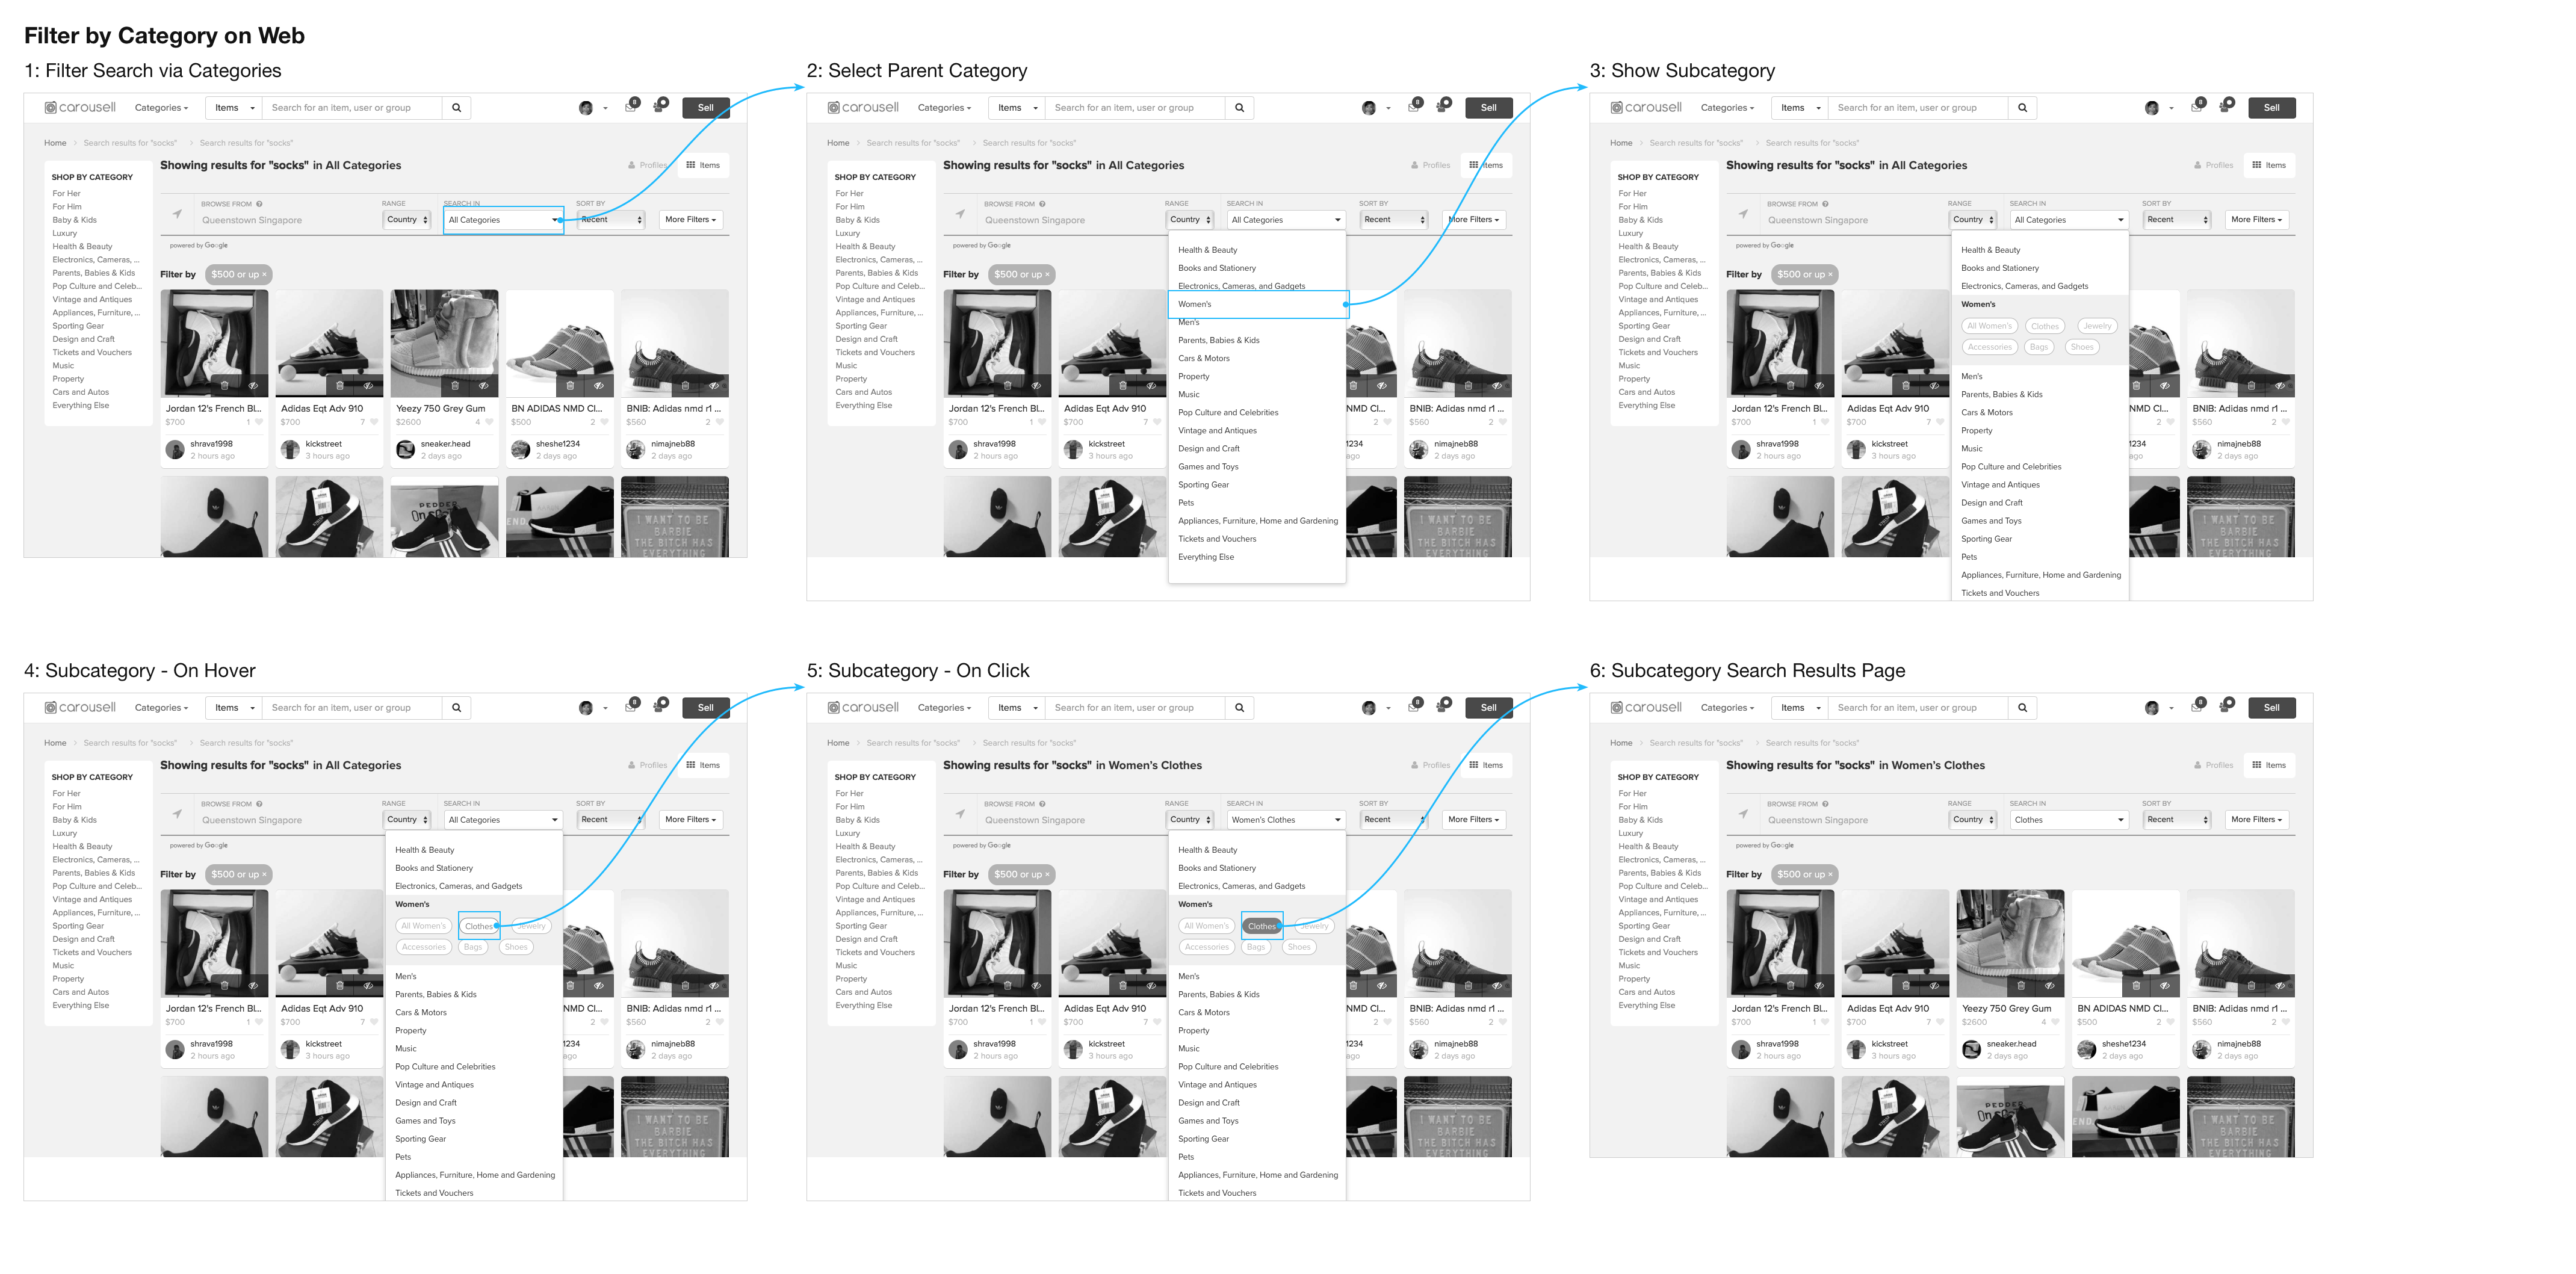 Filter by Category on Web